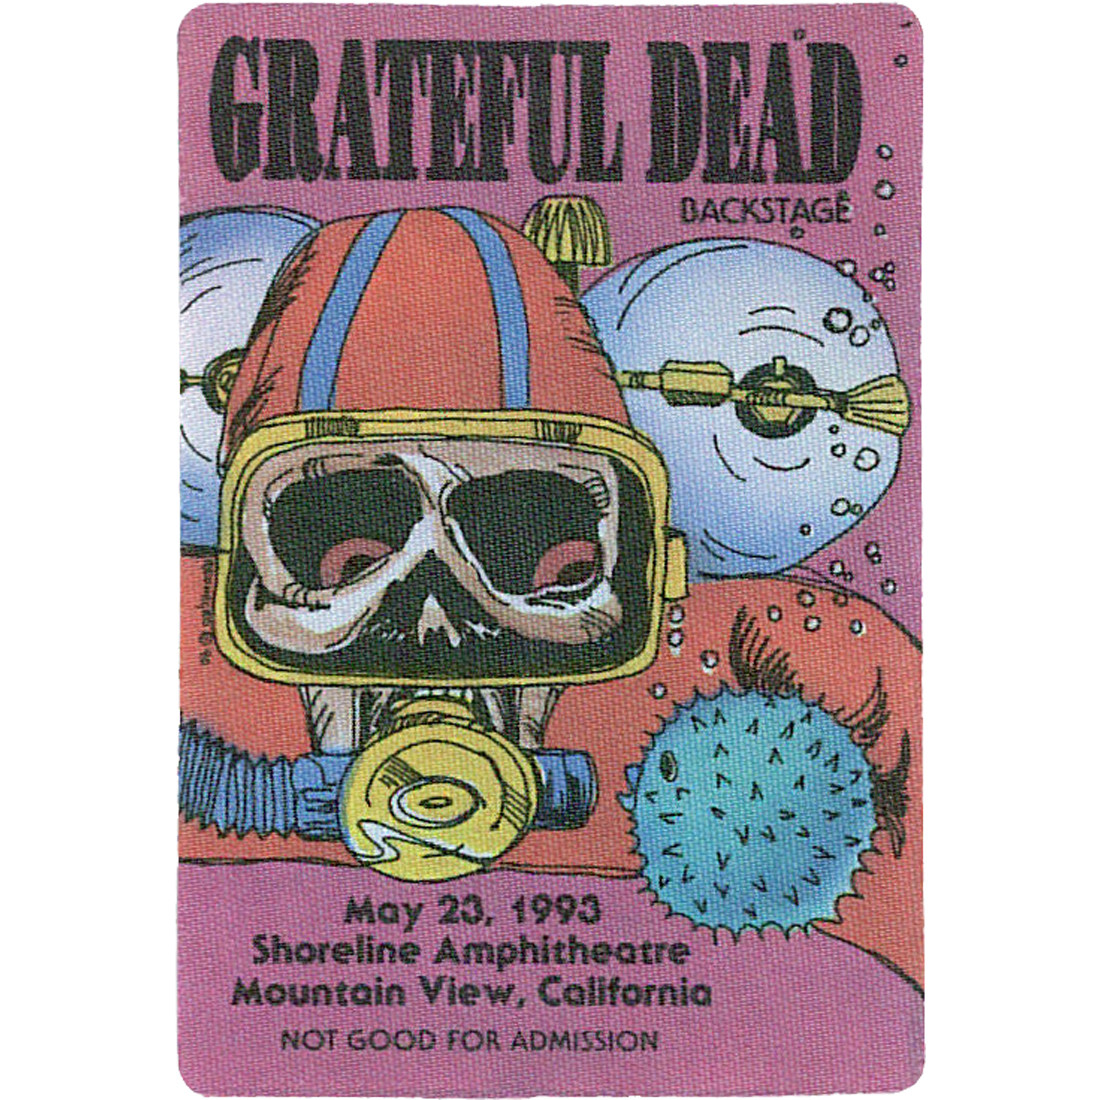 Grateful Dead 1993 05-23 Backstage Pass